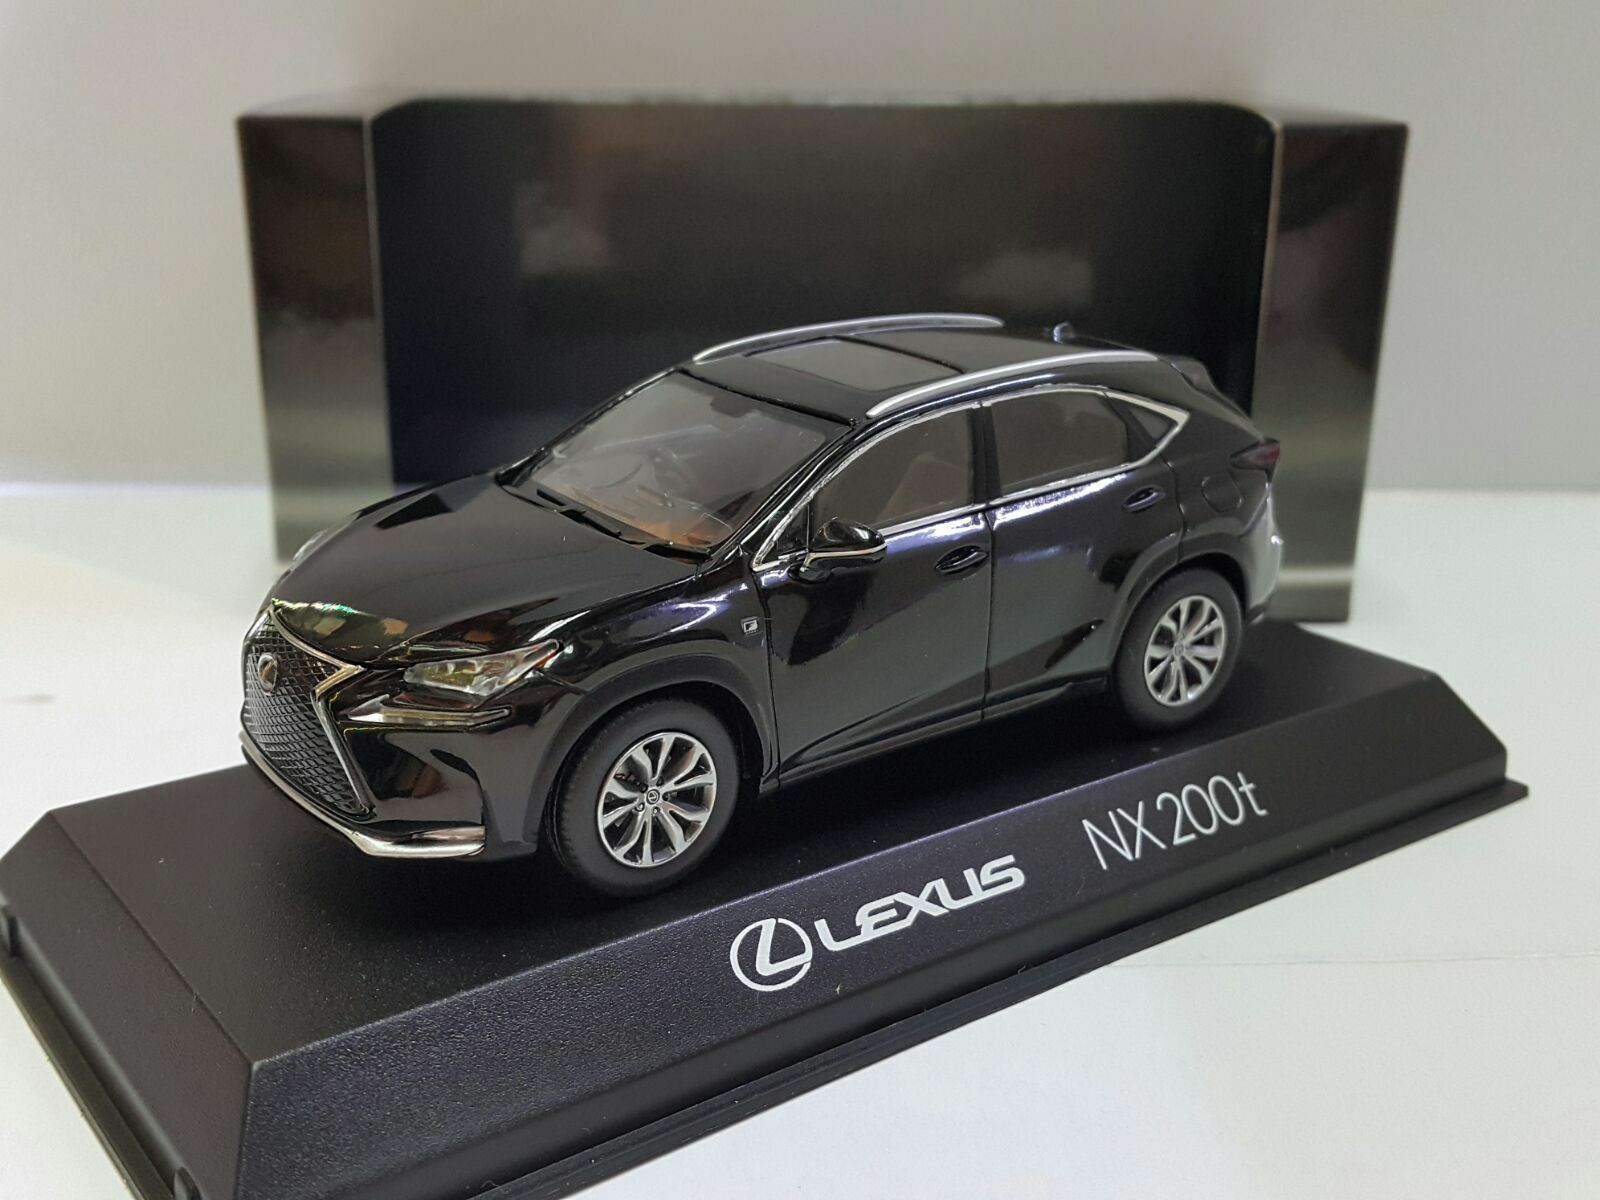 Kyosho LEXUS NX 200t Sport Utility Vehicle Mercurio nero Distribuidor Edition 1 43